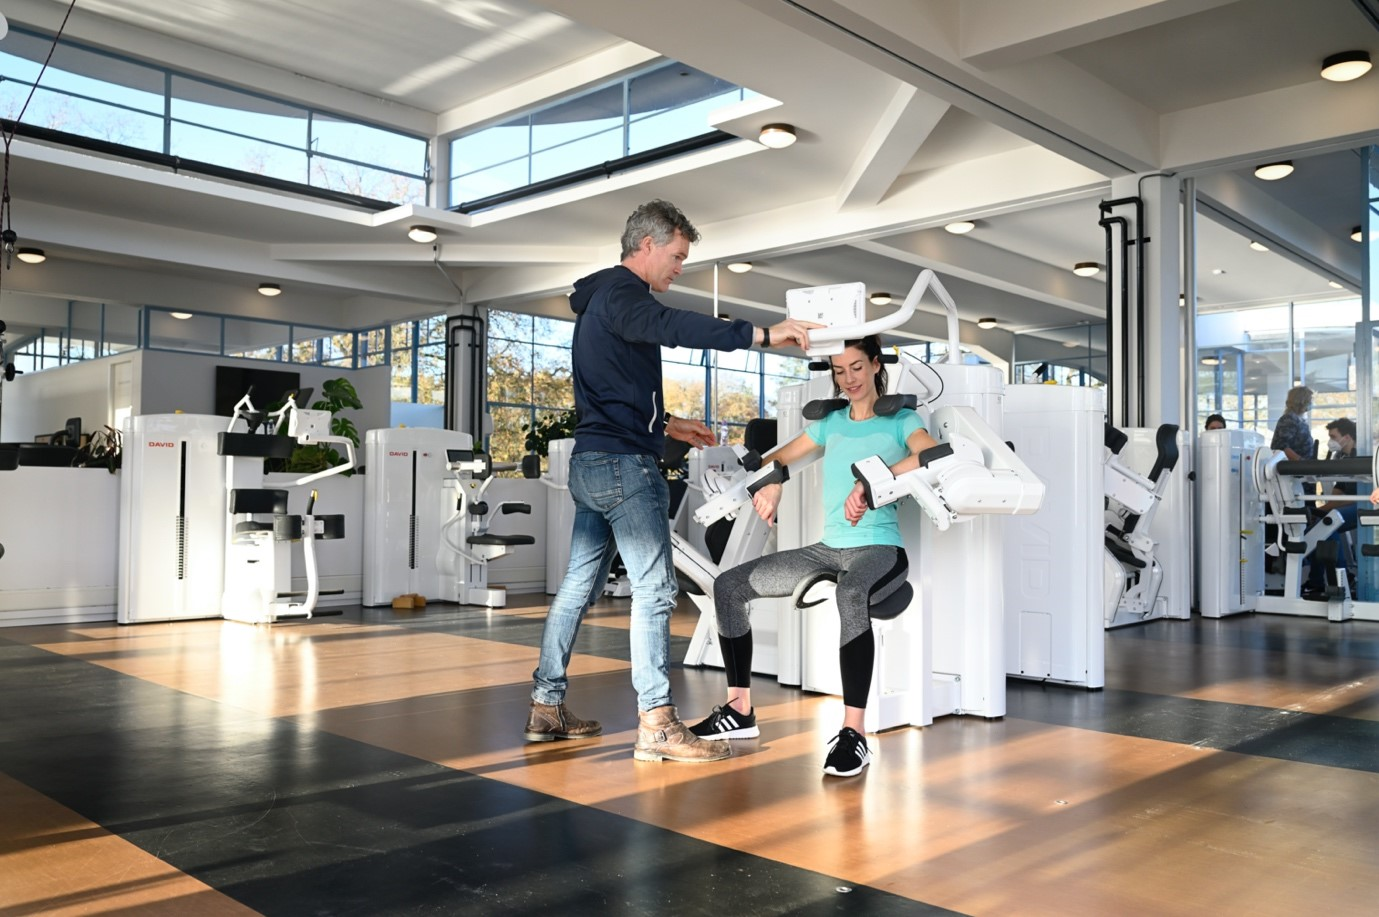 shoulder rehabilitation technology at OREC physical therapy center